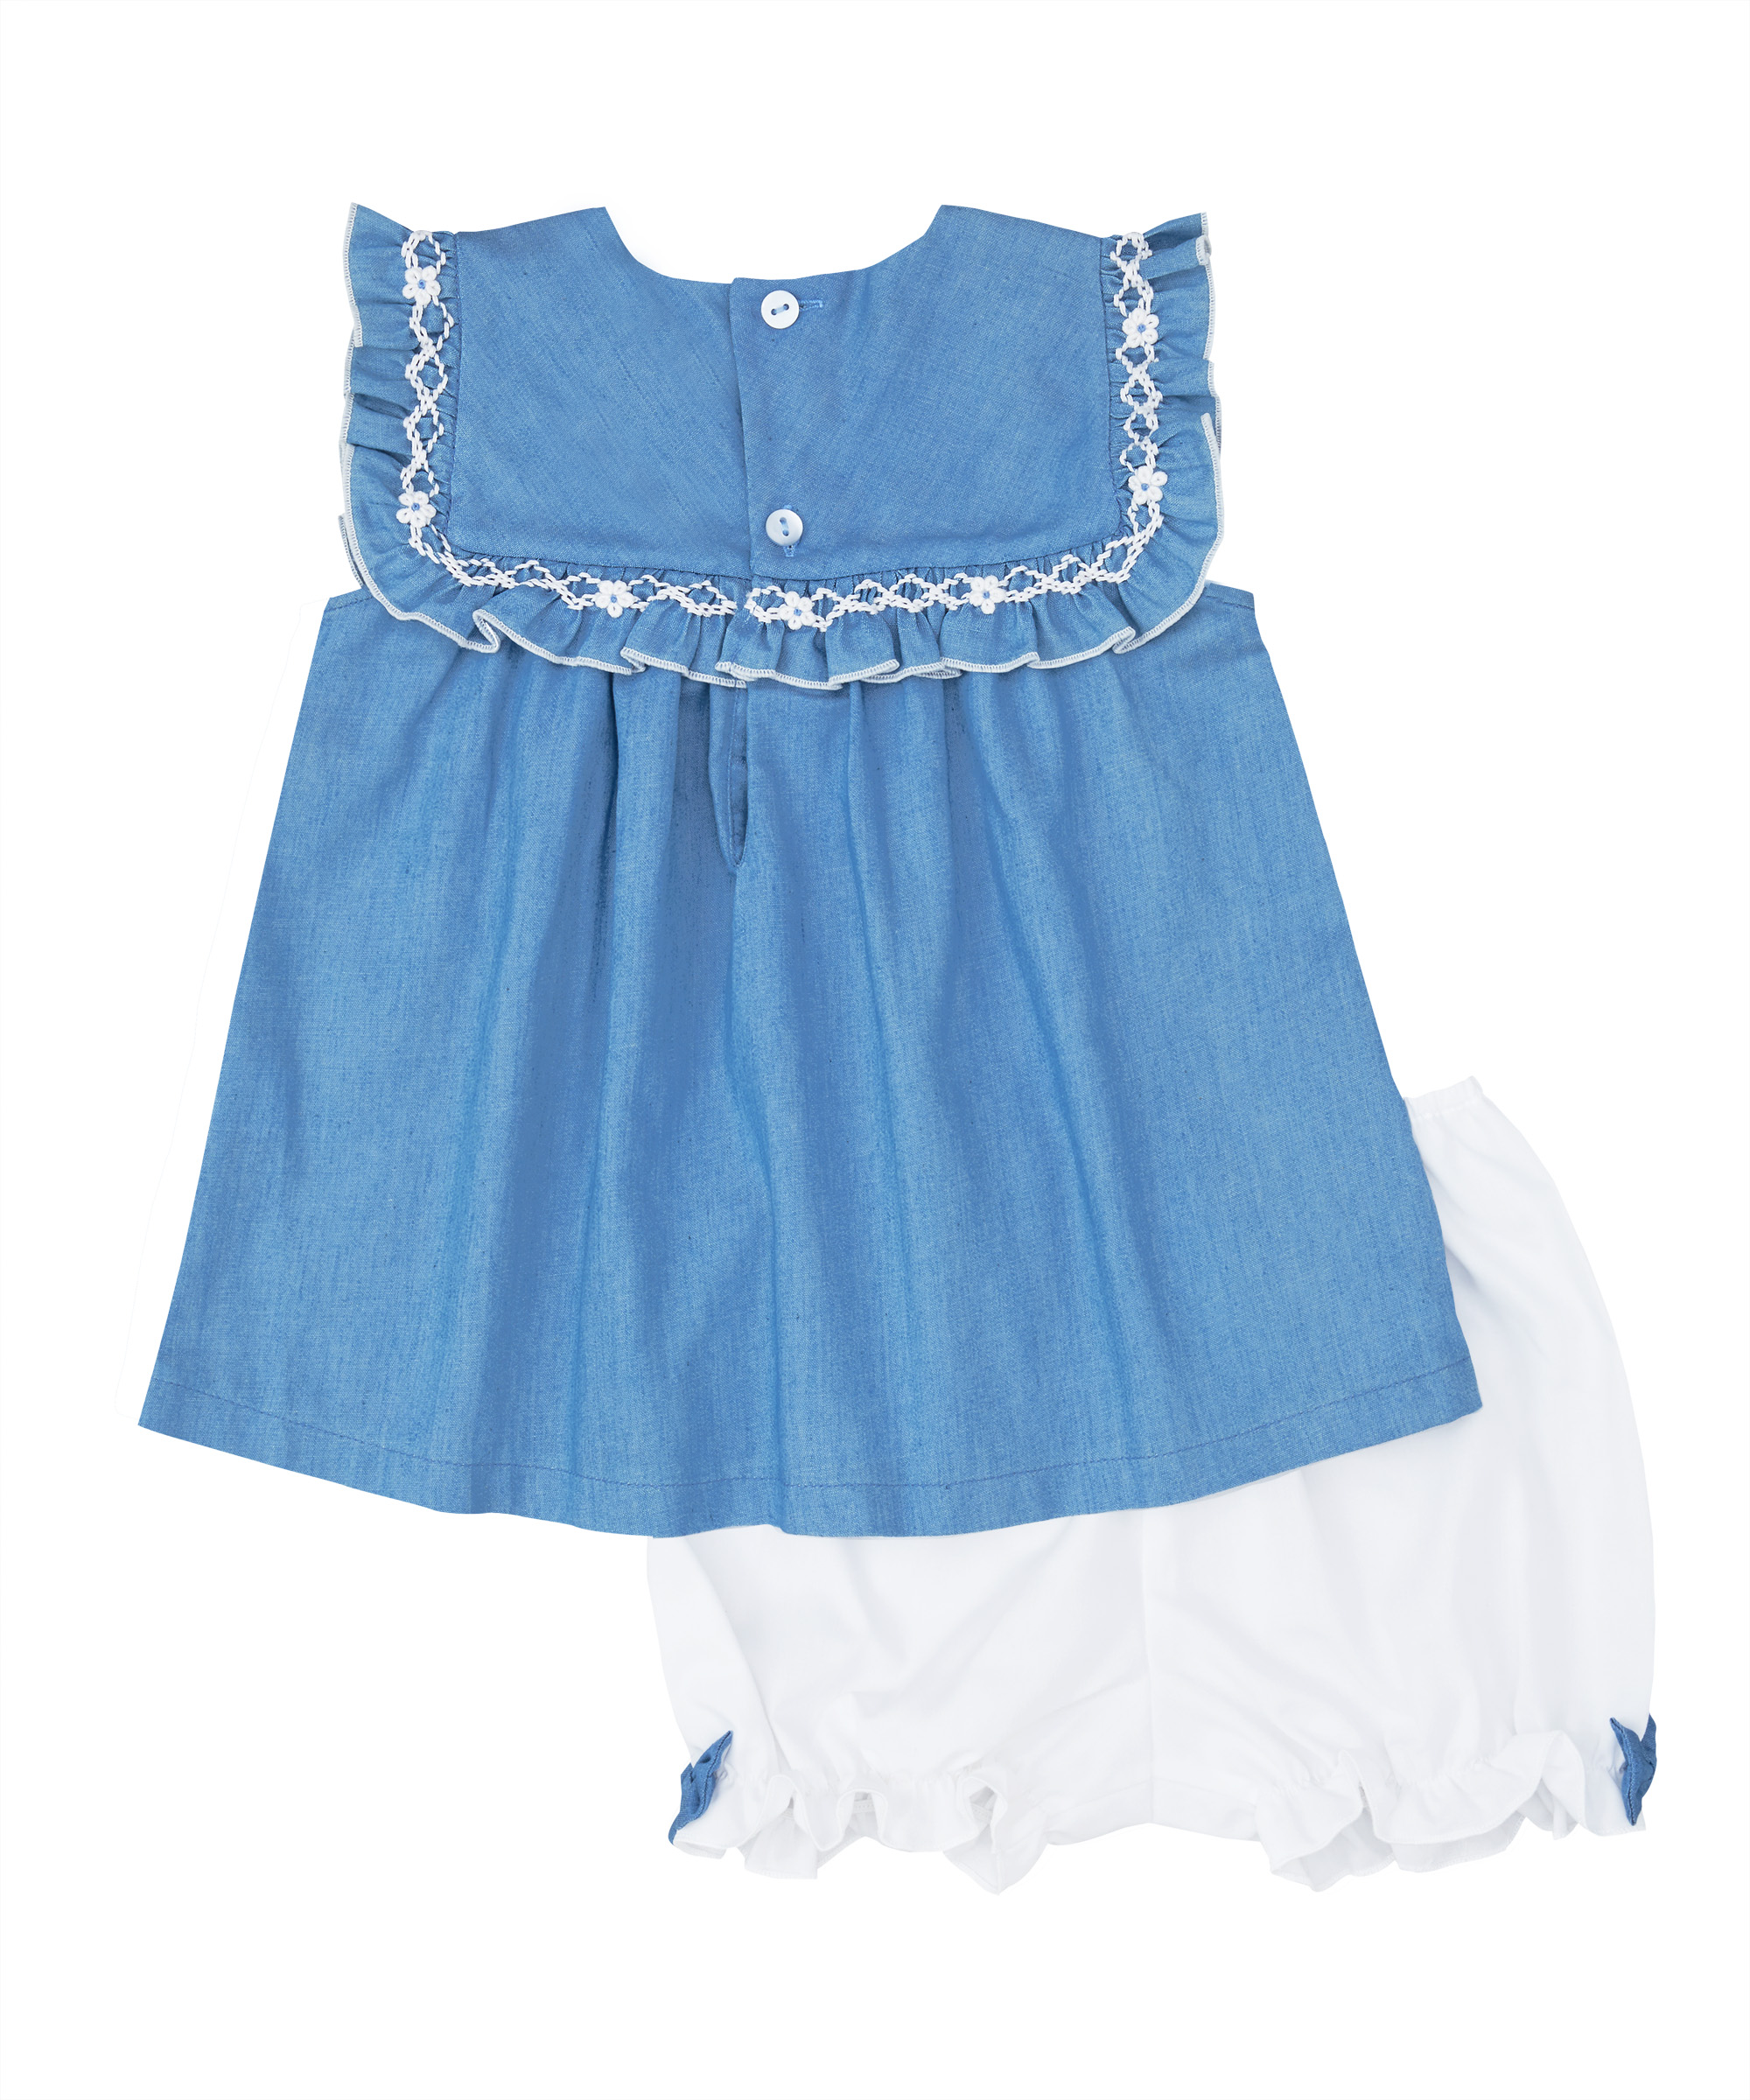 Blue & White Smocked Denim Ruffle Top And Bloomers